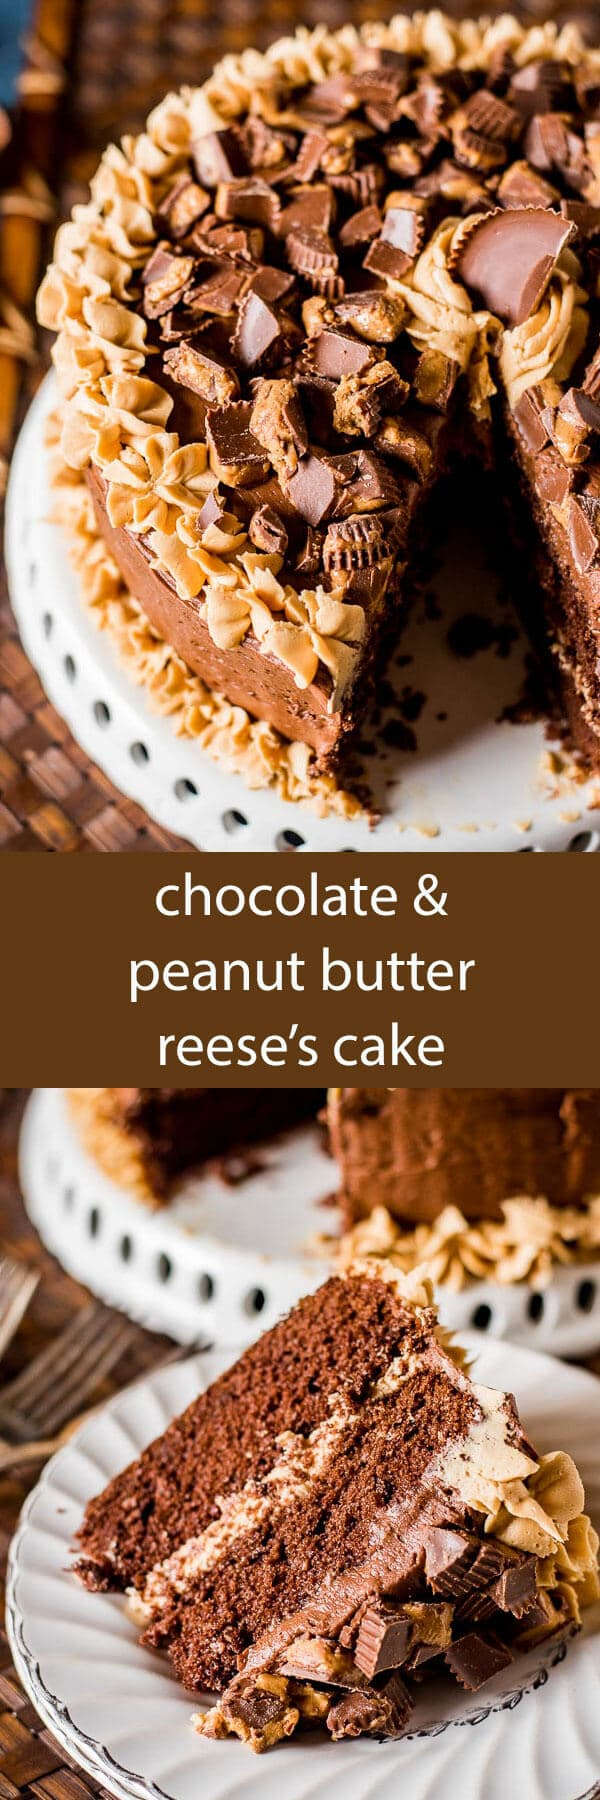 Chocolate Peanut Butter Reese's Cake is a moist, from scratch chocolate cake with peanut butter frosting and chocolate buttercream frosting! Perfect for the Reese's peanut butter cup lover in your life! This is the best chocolate cake recipe good for any occasion.